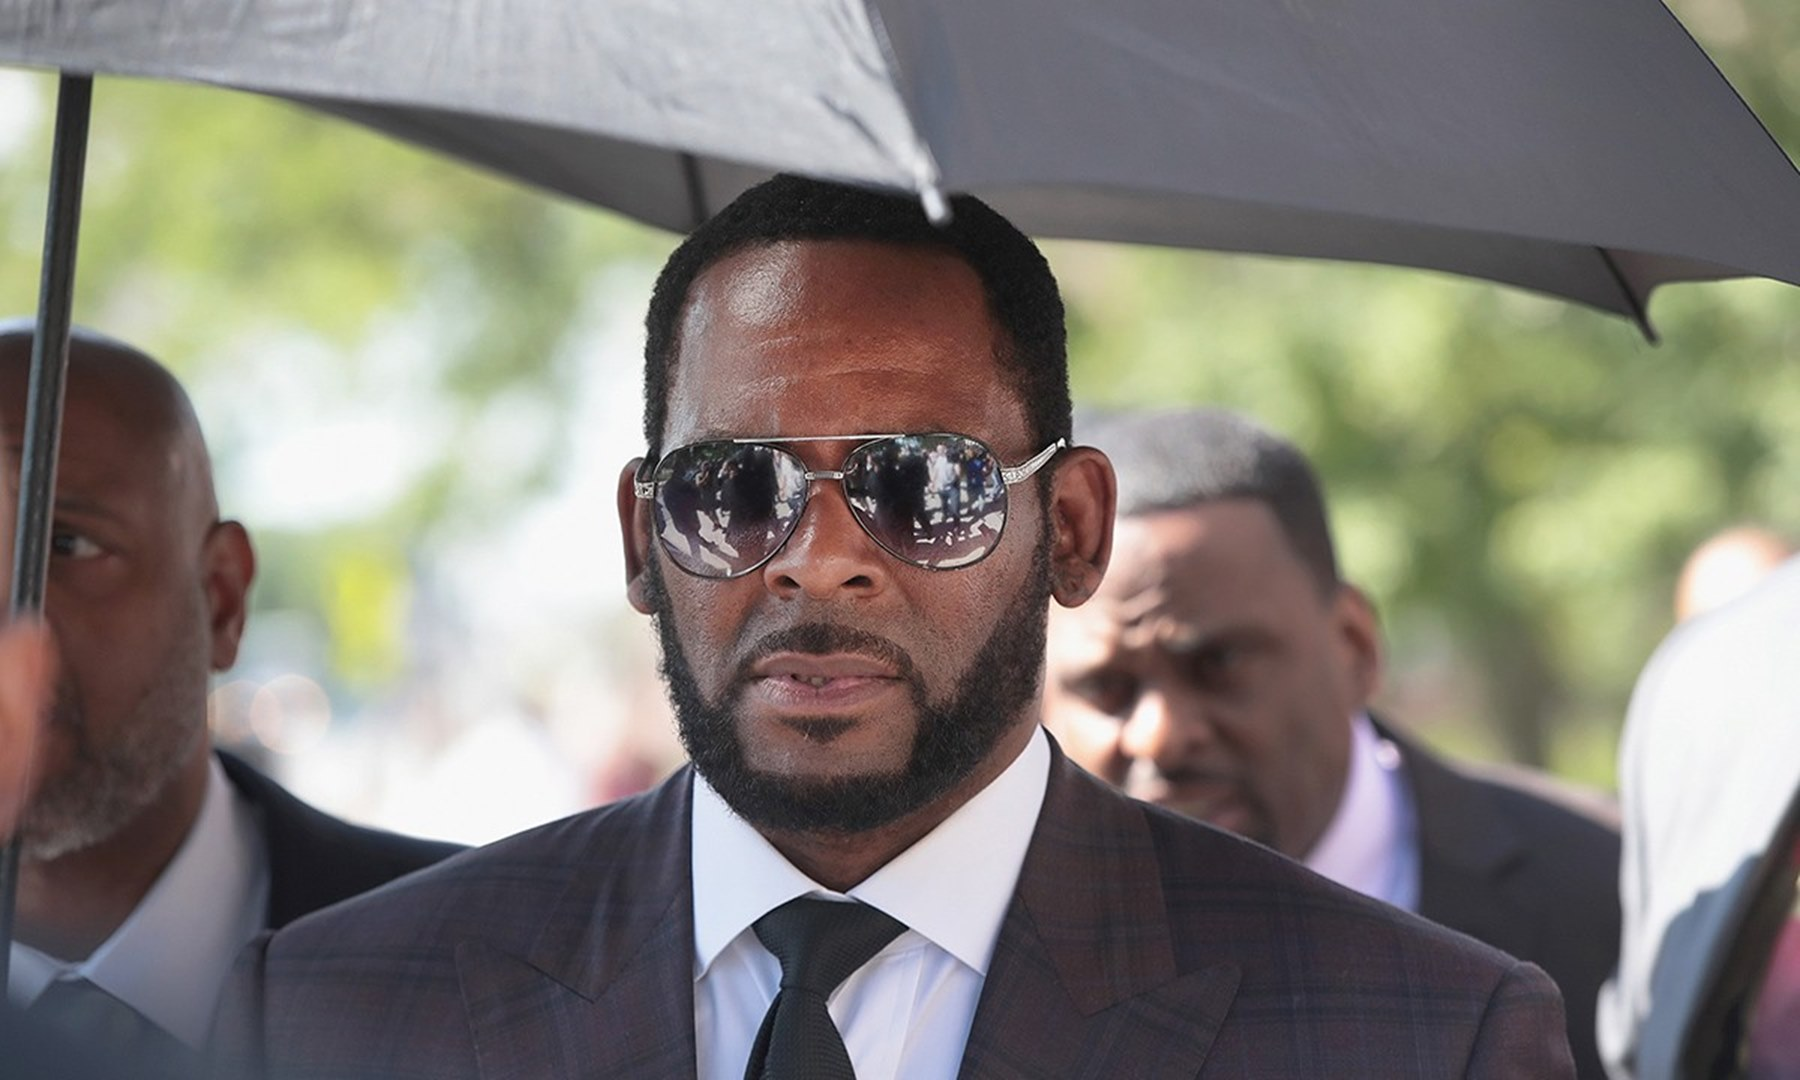 R. Kelly New Accusations Victims Underage